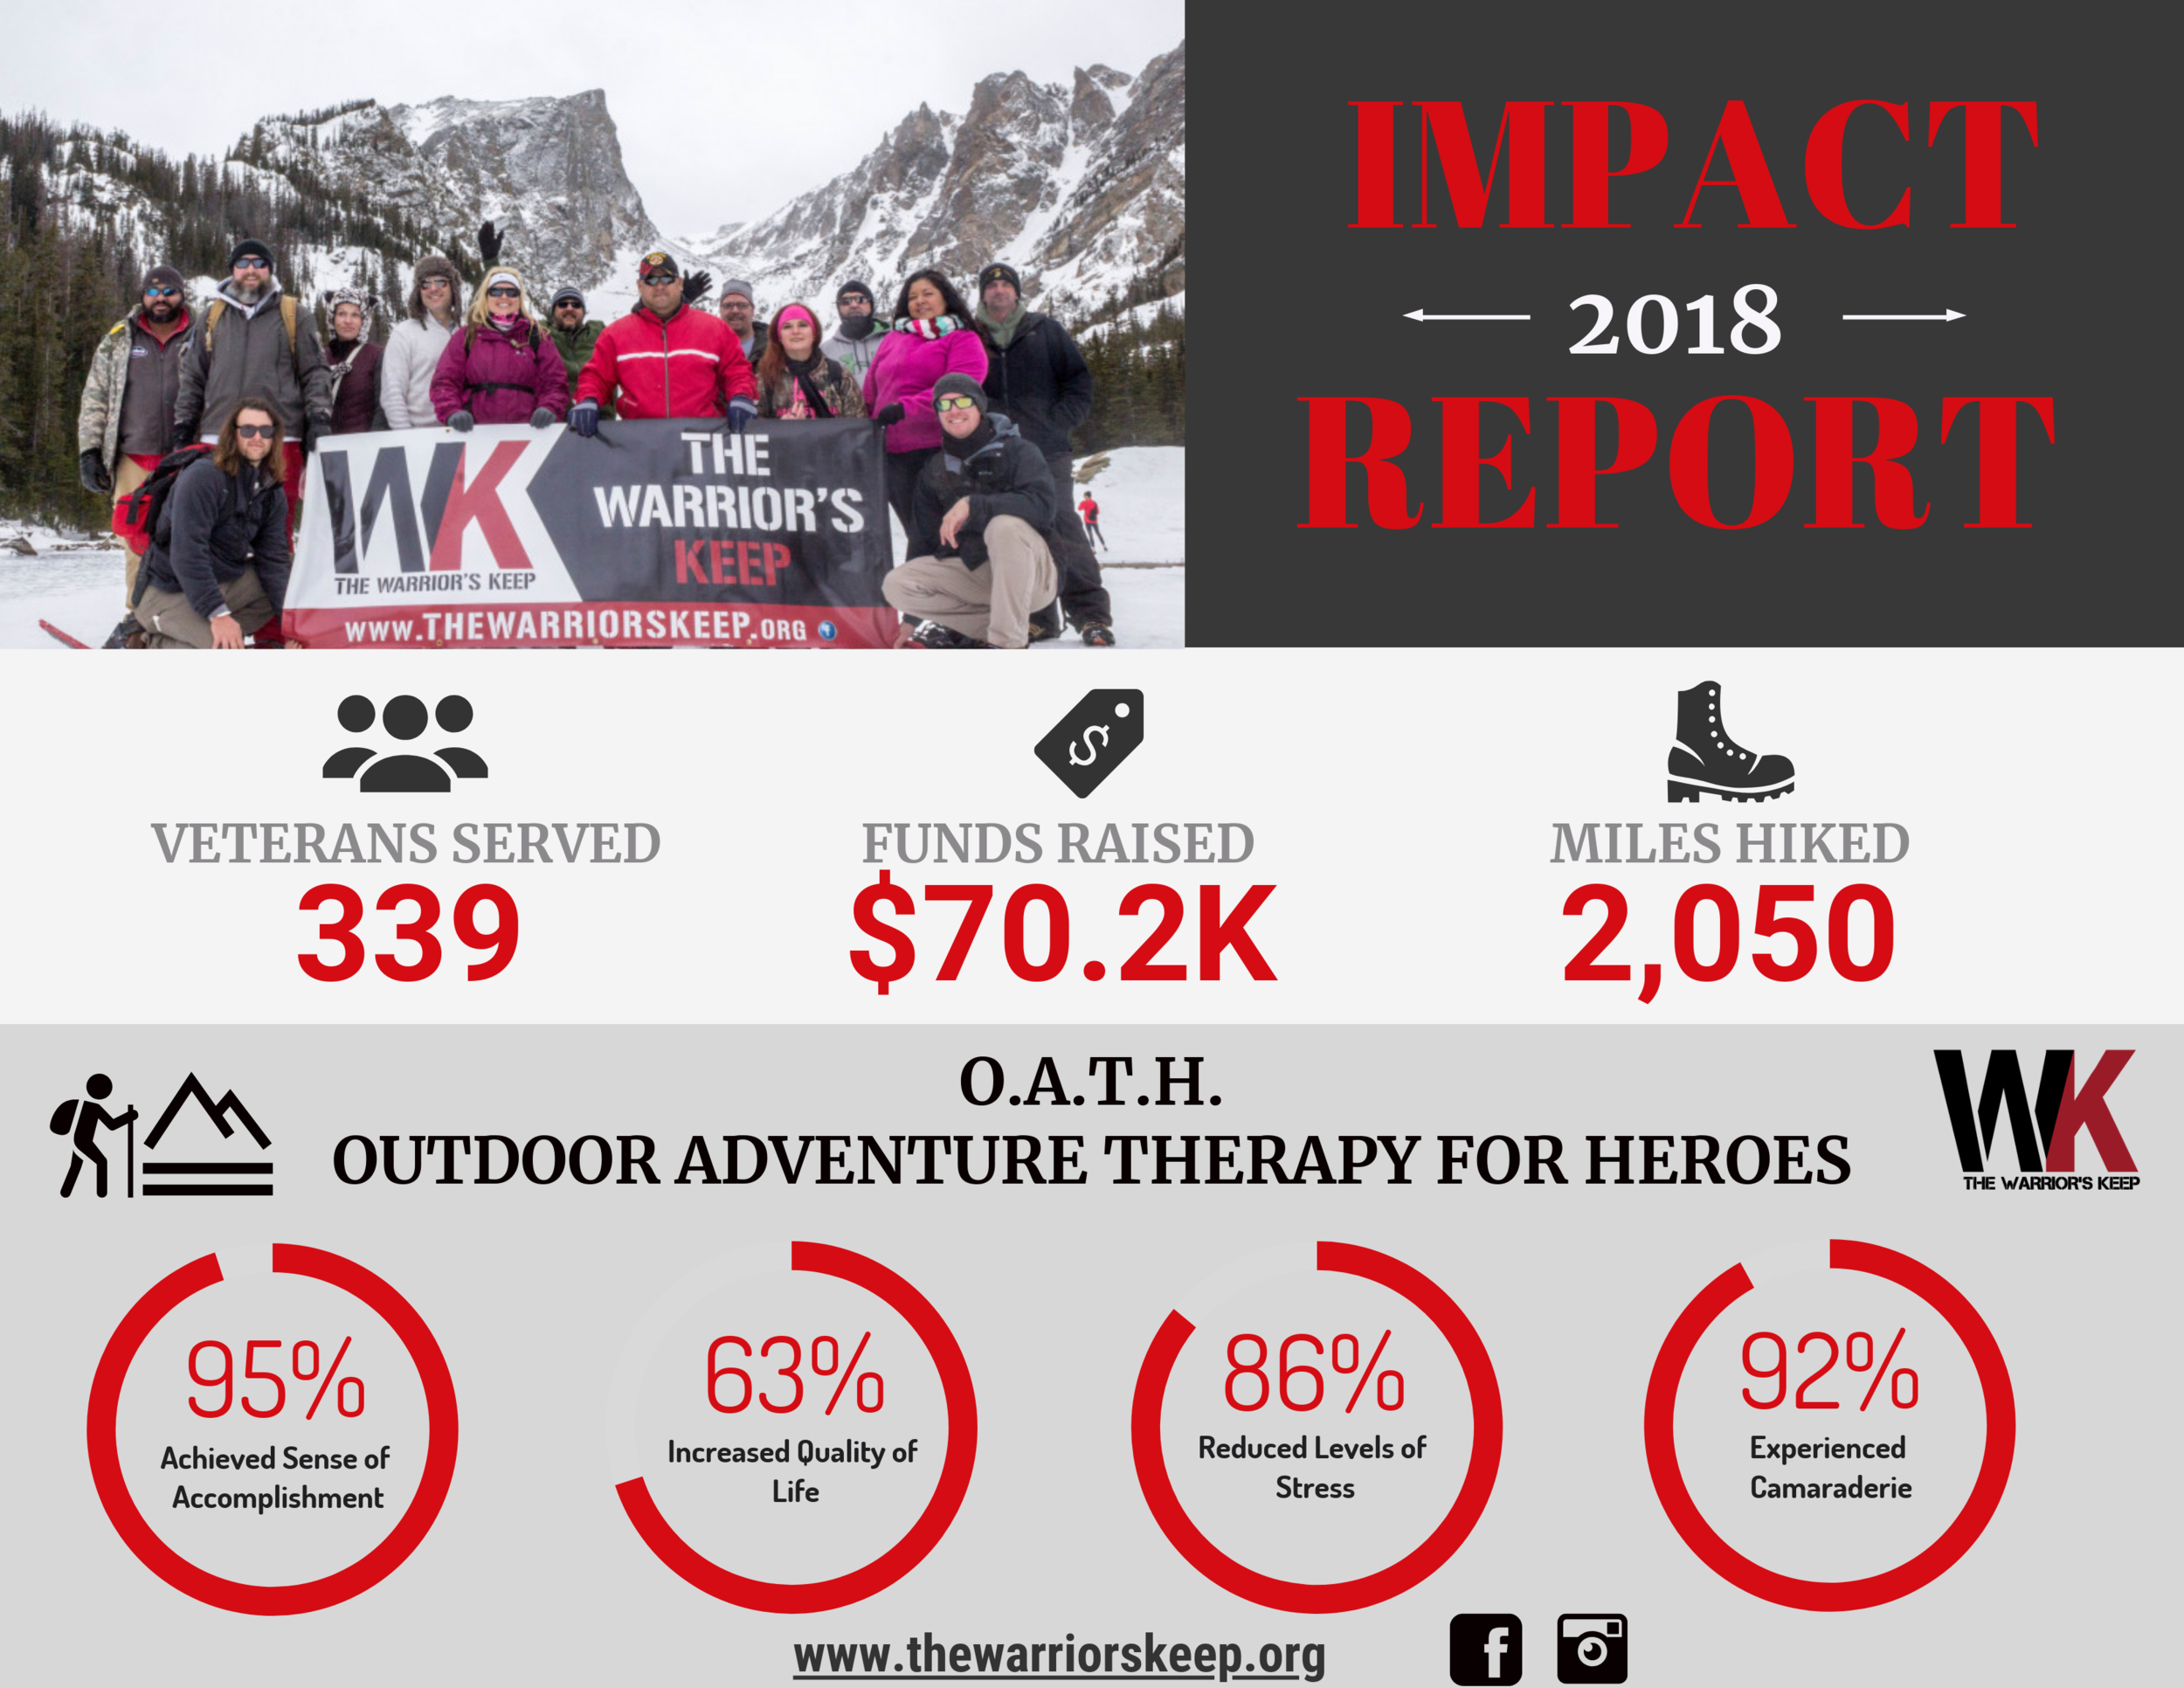 2018 Impact Report (infographic).png